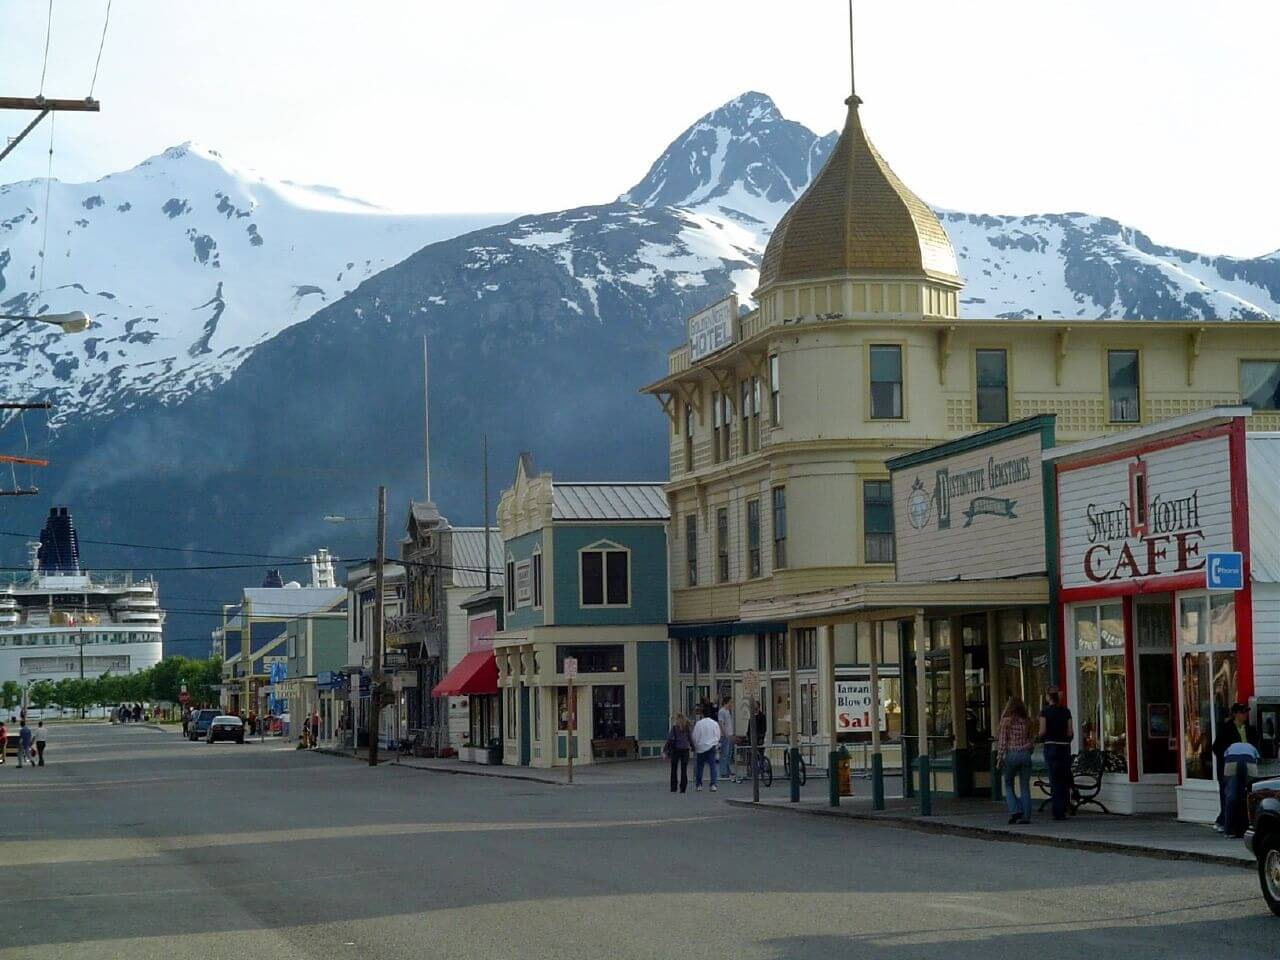 The streets of present-day Skagway, Alaska.